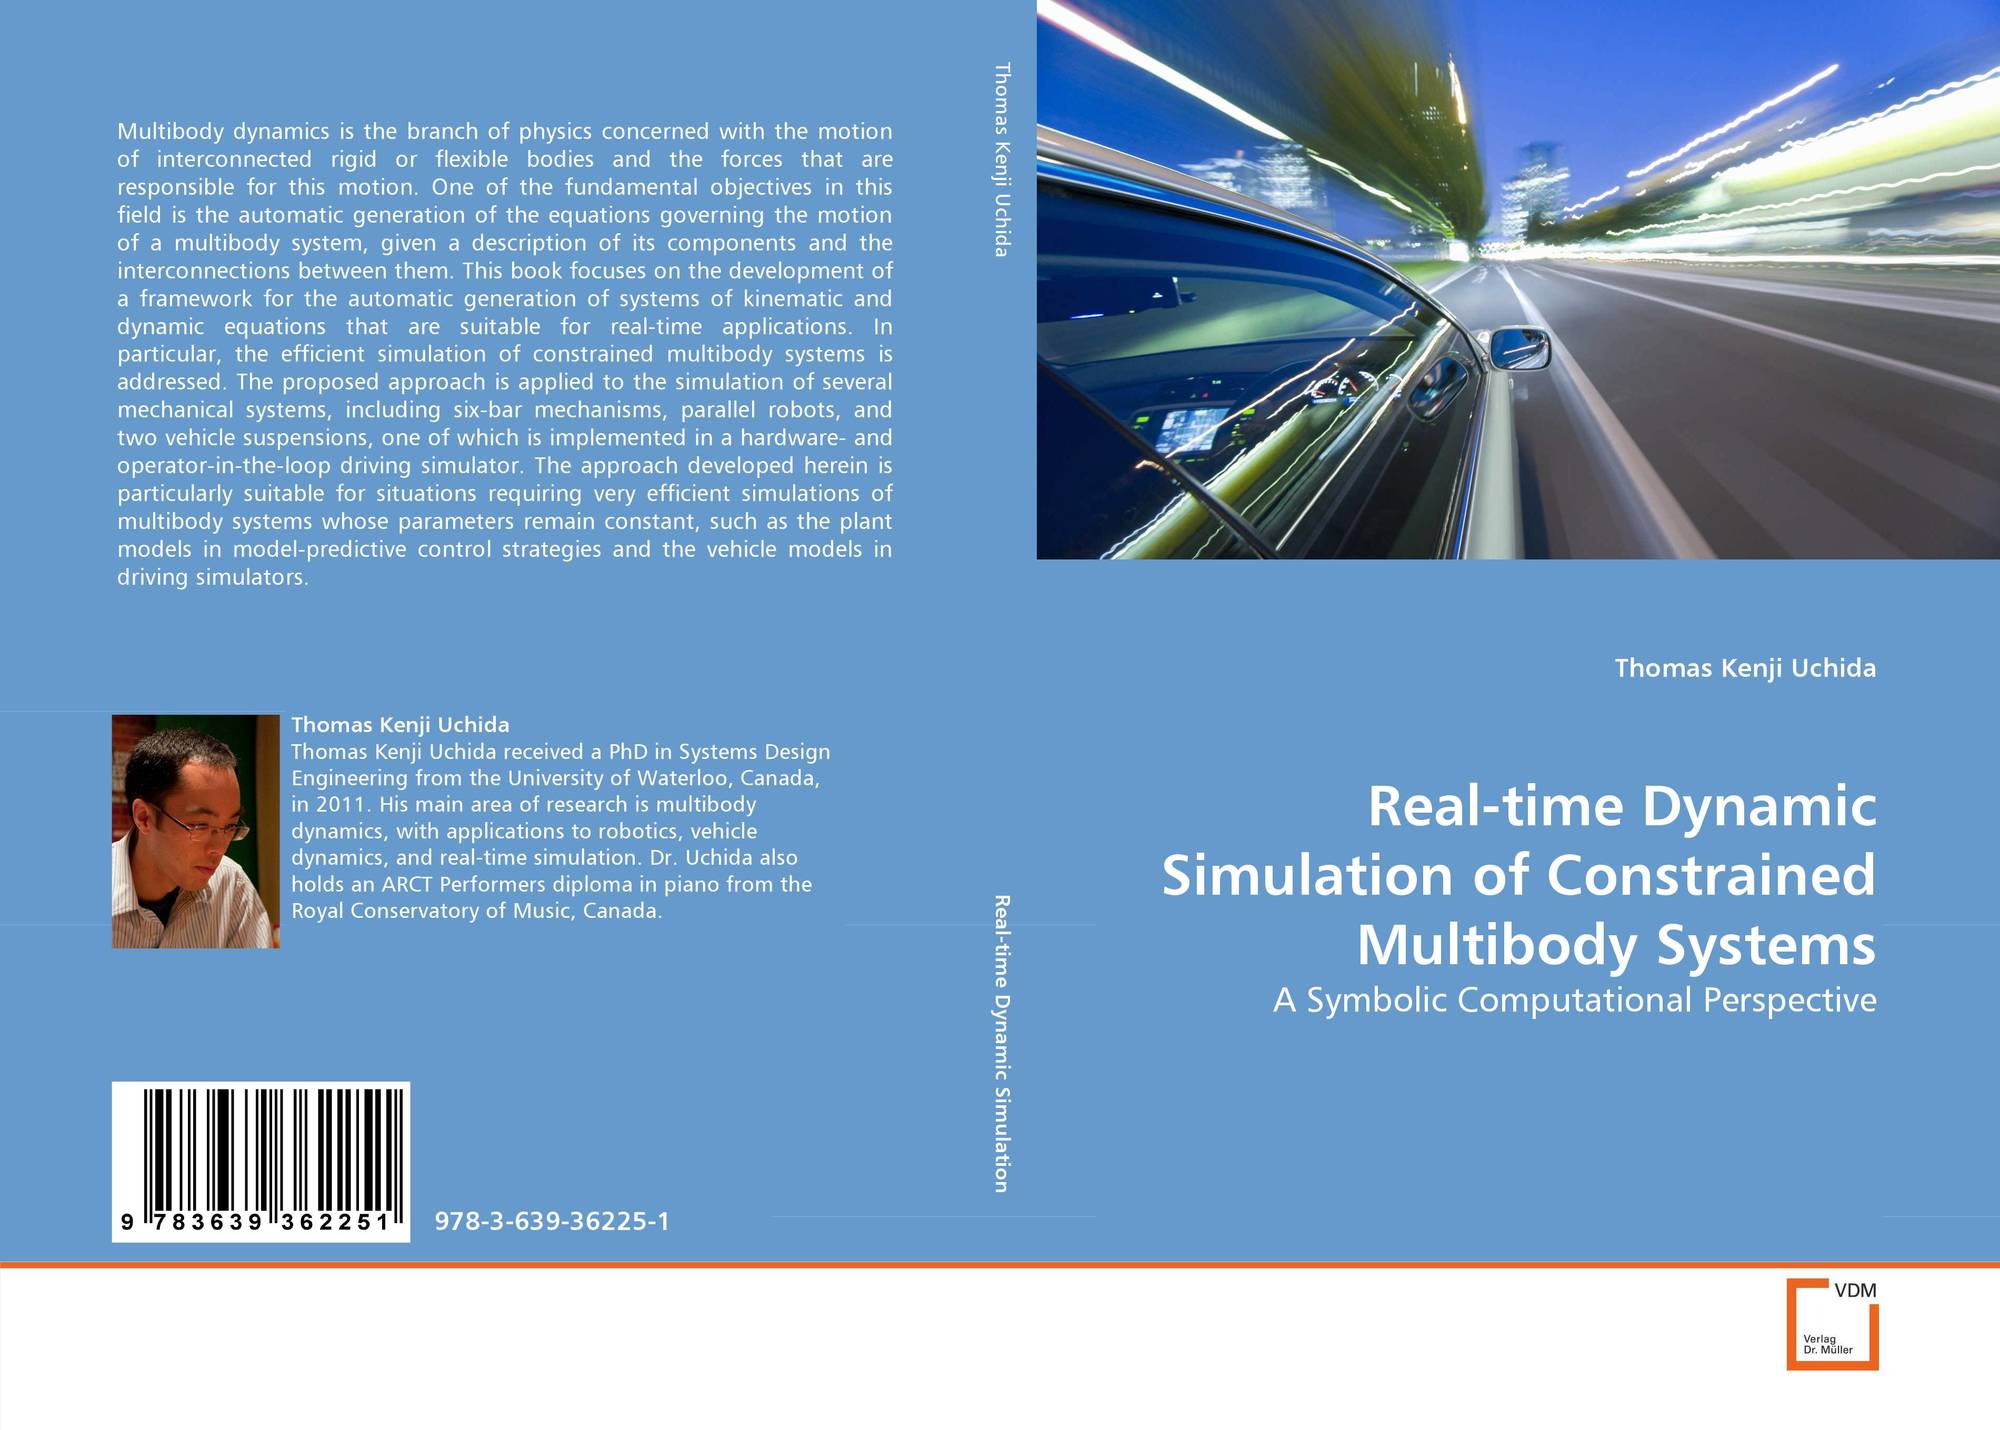 Real-time Dynamic Simulation of Constrained Multibody Systems, 978-3